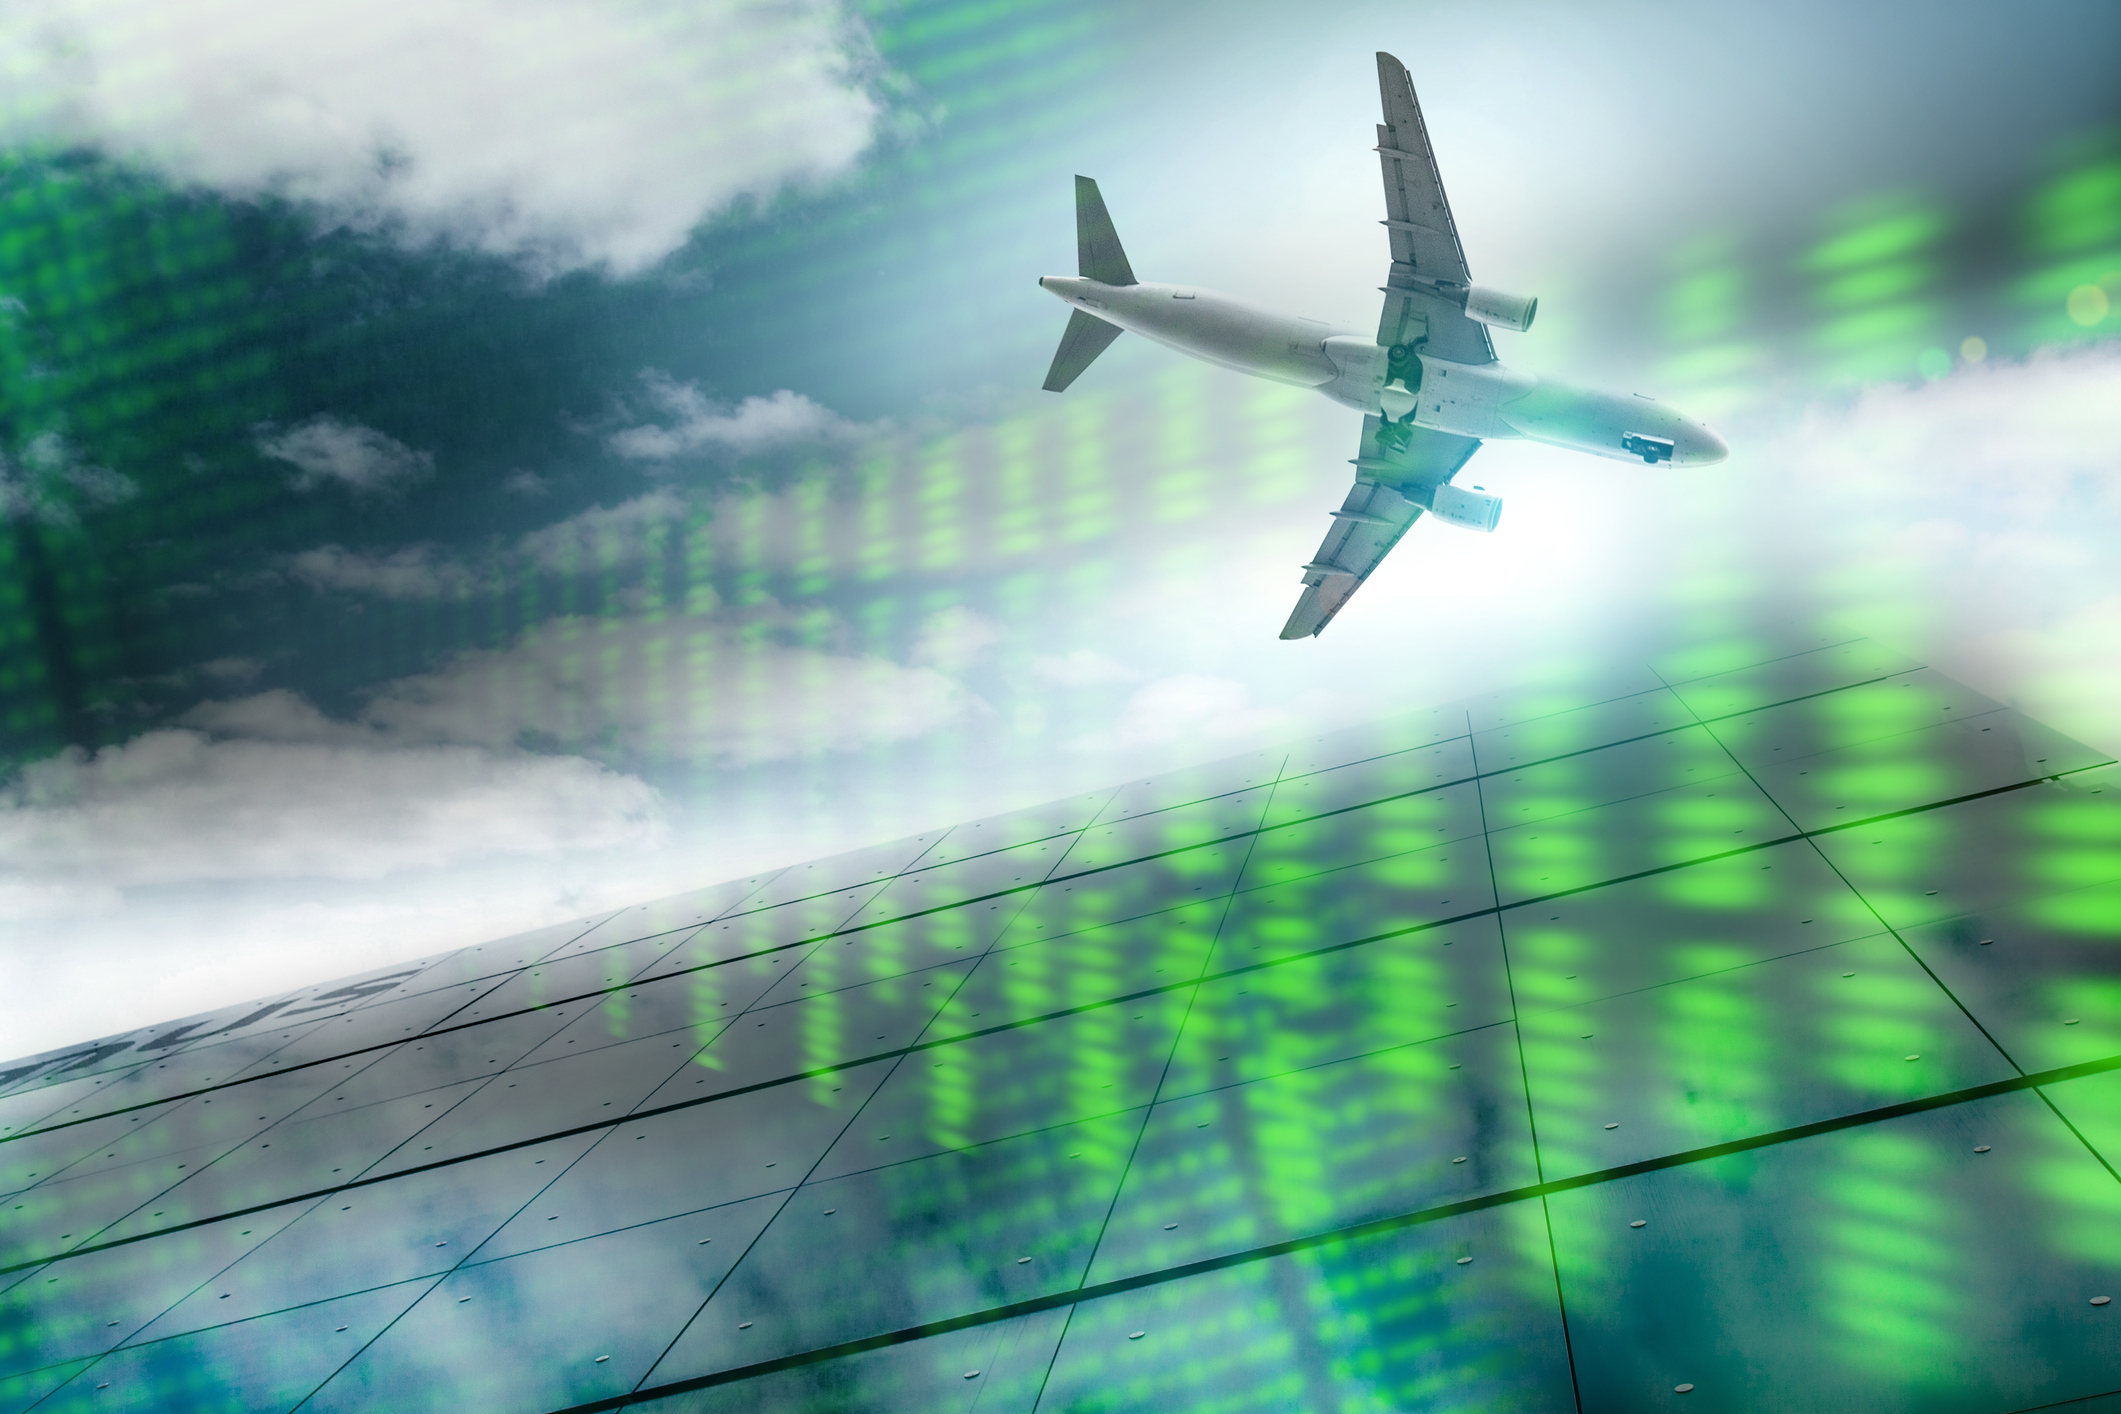 Hacking aircraft is a major cybersecurity concern